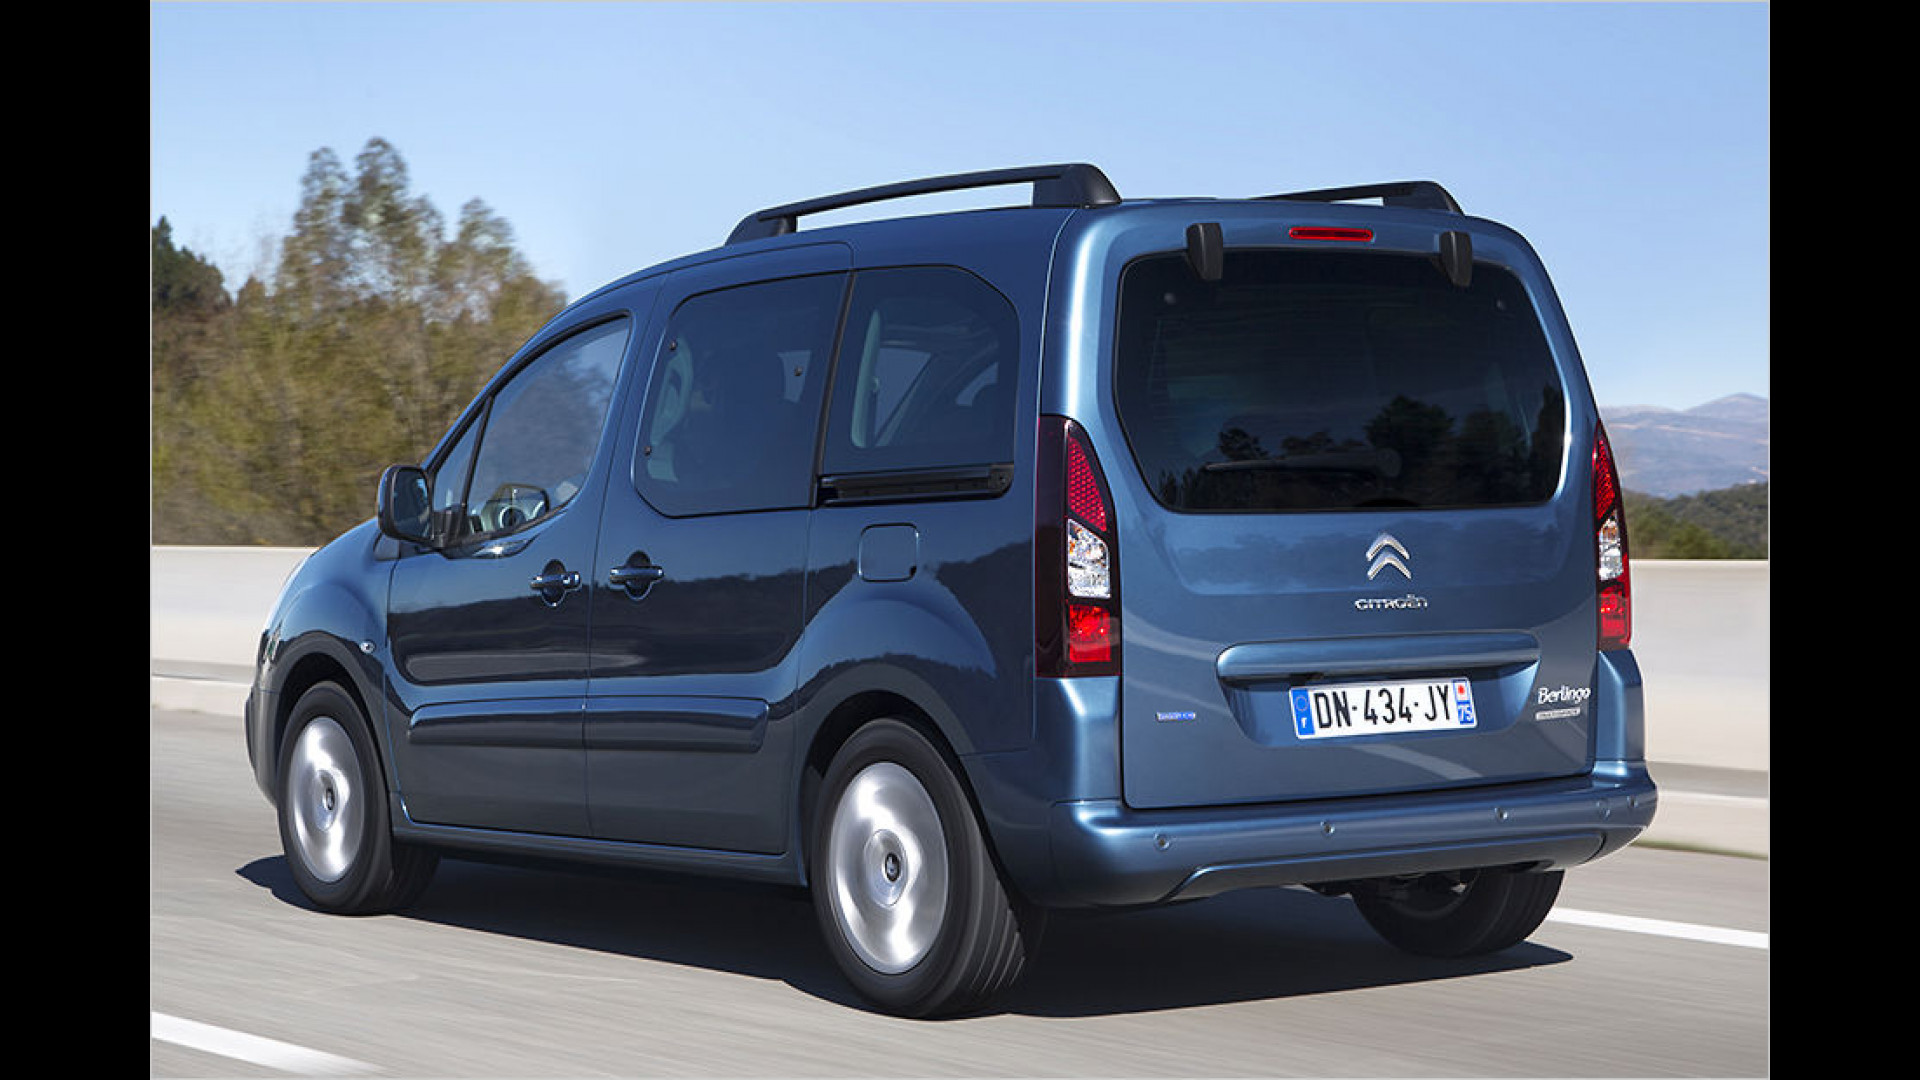 Gelifteter Citroën Berlingo 2015 Im Test